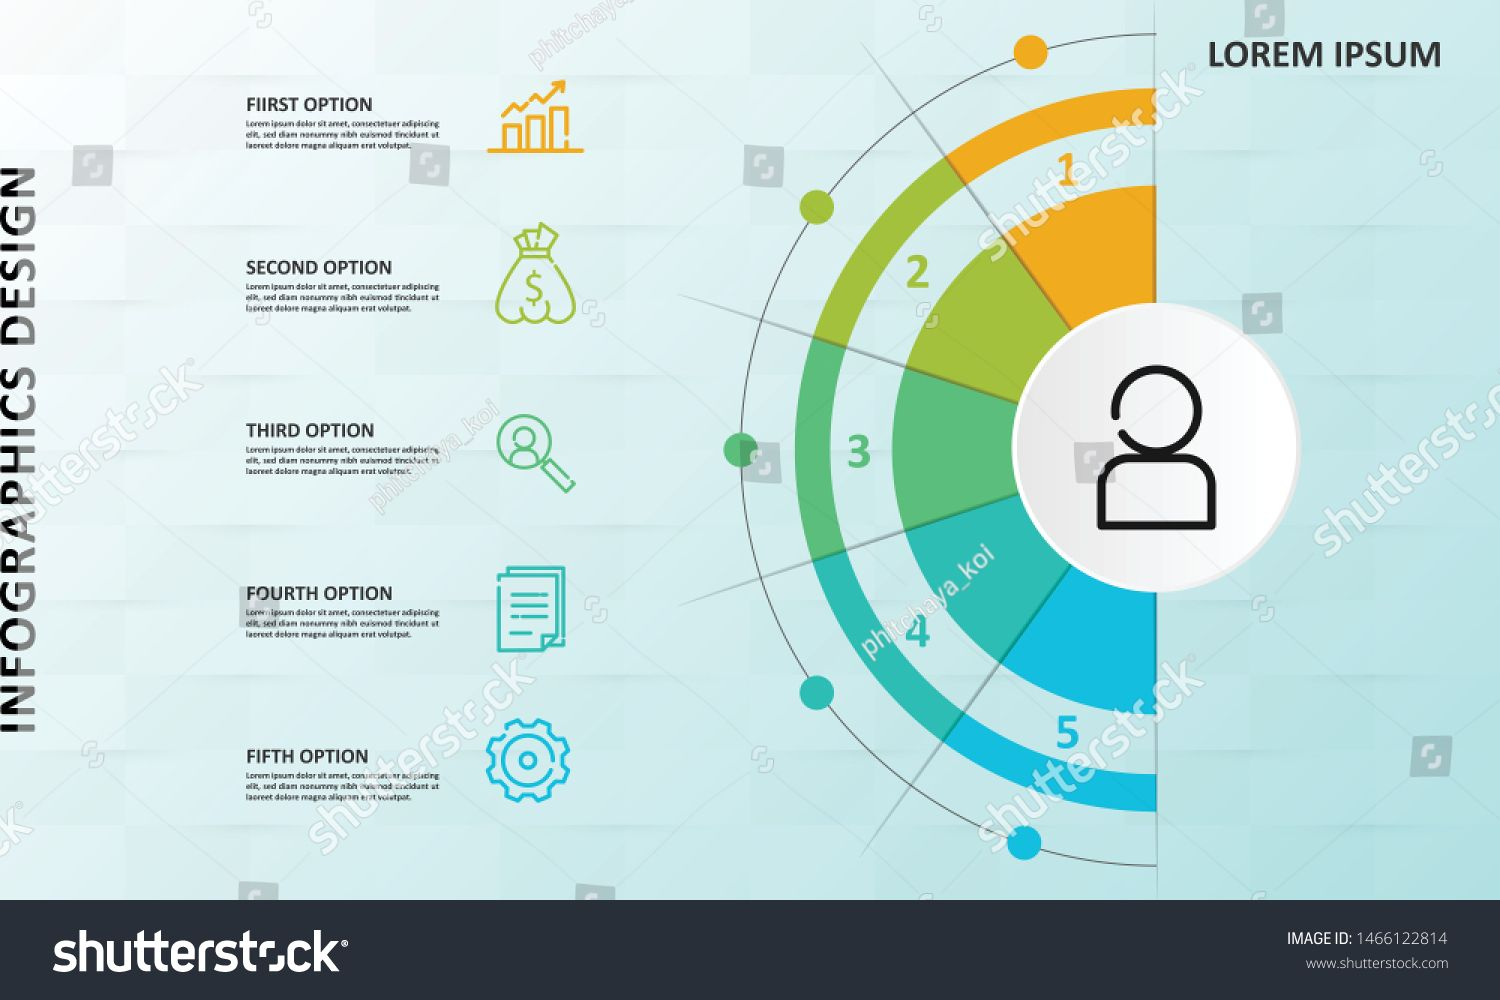 Circular business infographic element n be used for step workflow diagram banner process business presentation template web design price list timeline report